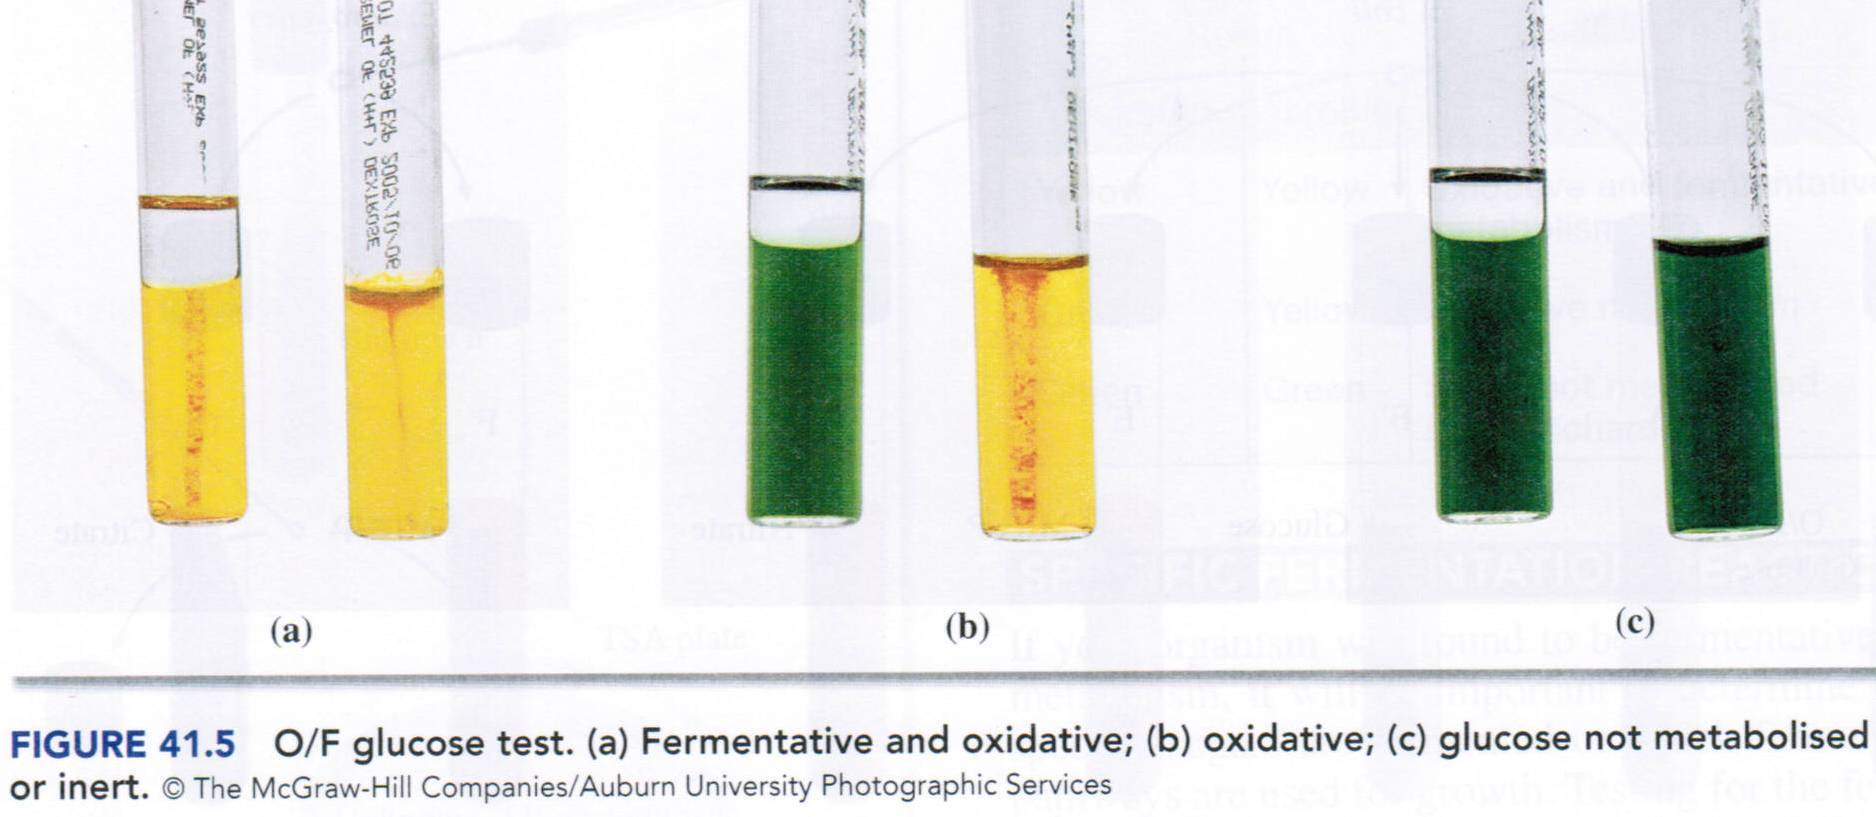 laboratory protocol for carbohydrates Phenol-sulfuric acid method for total carbohydrates  but follow good laboratory practices outlined by environmental health and safety protocols at your.